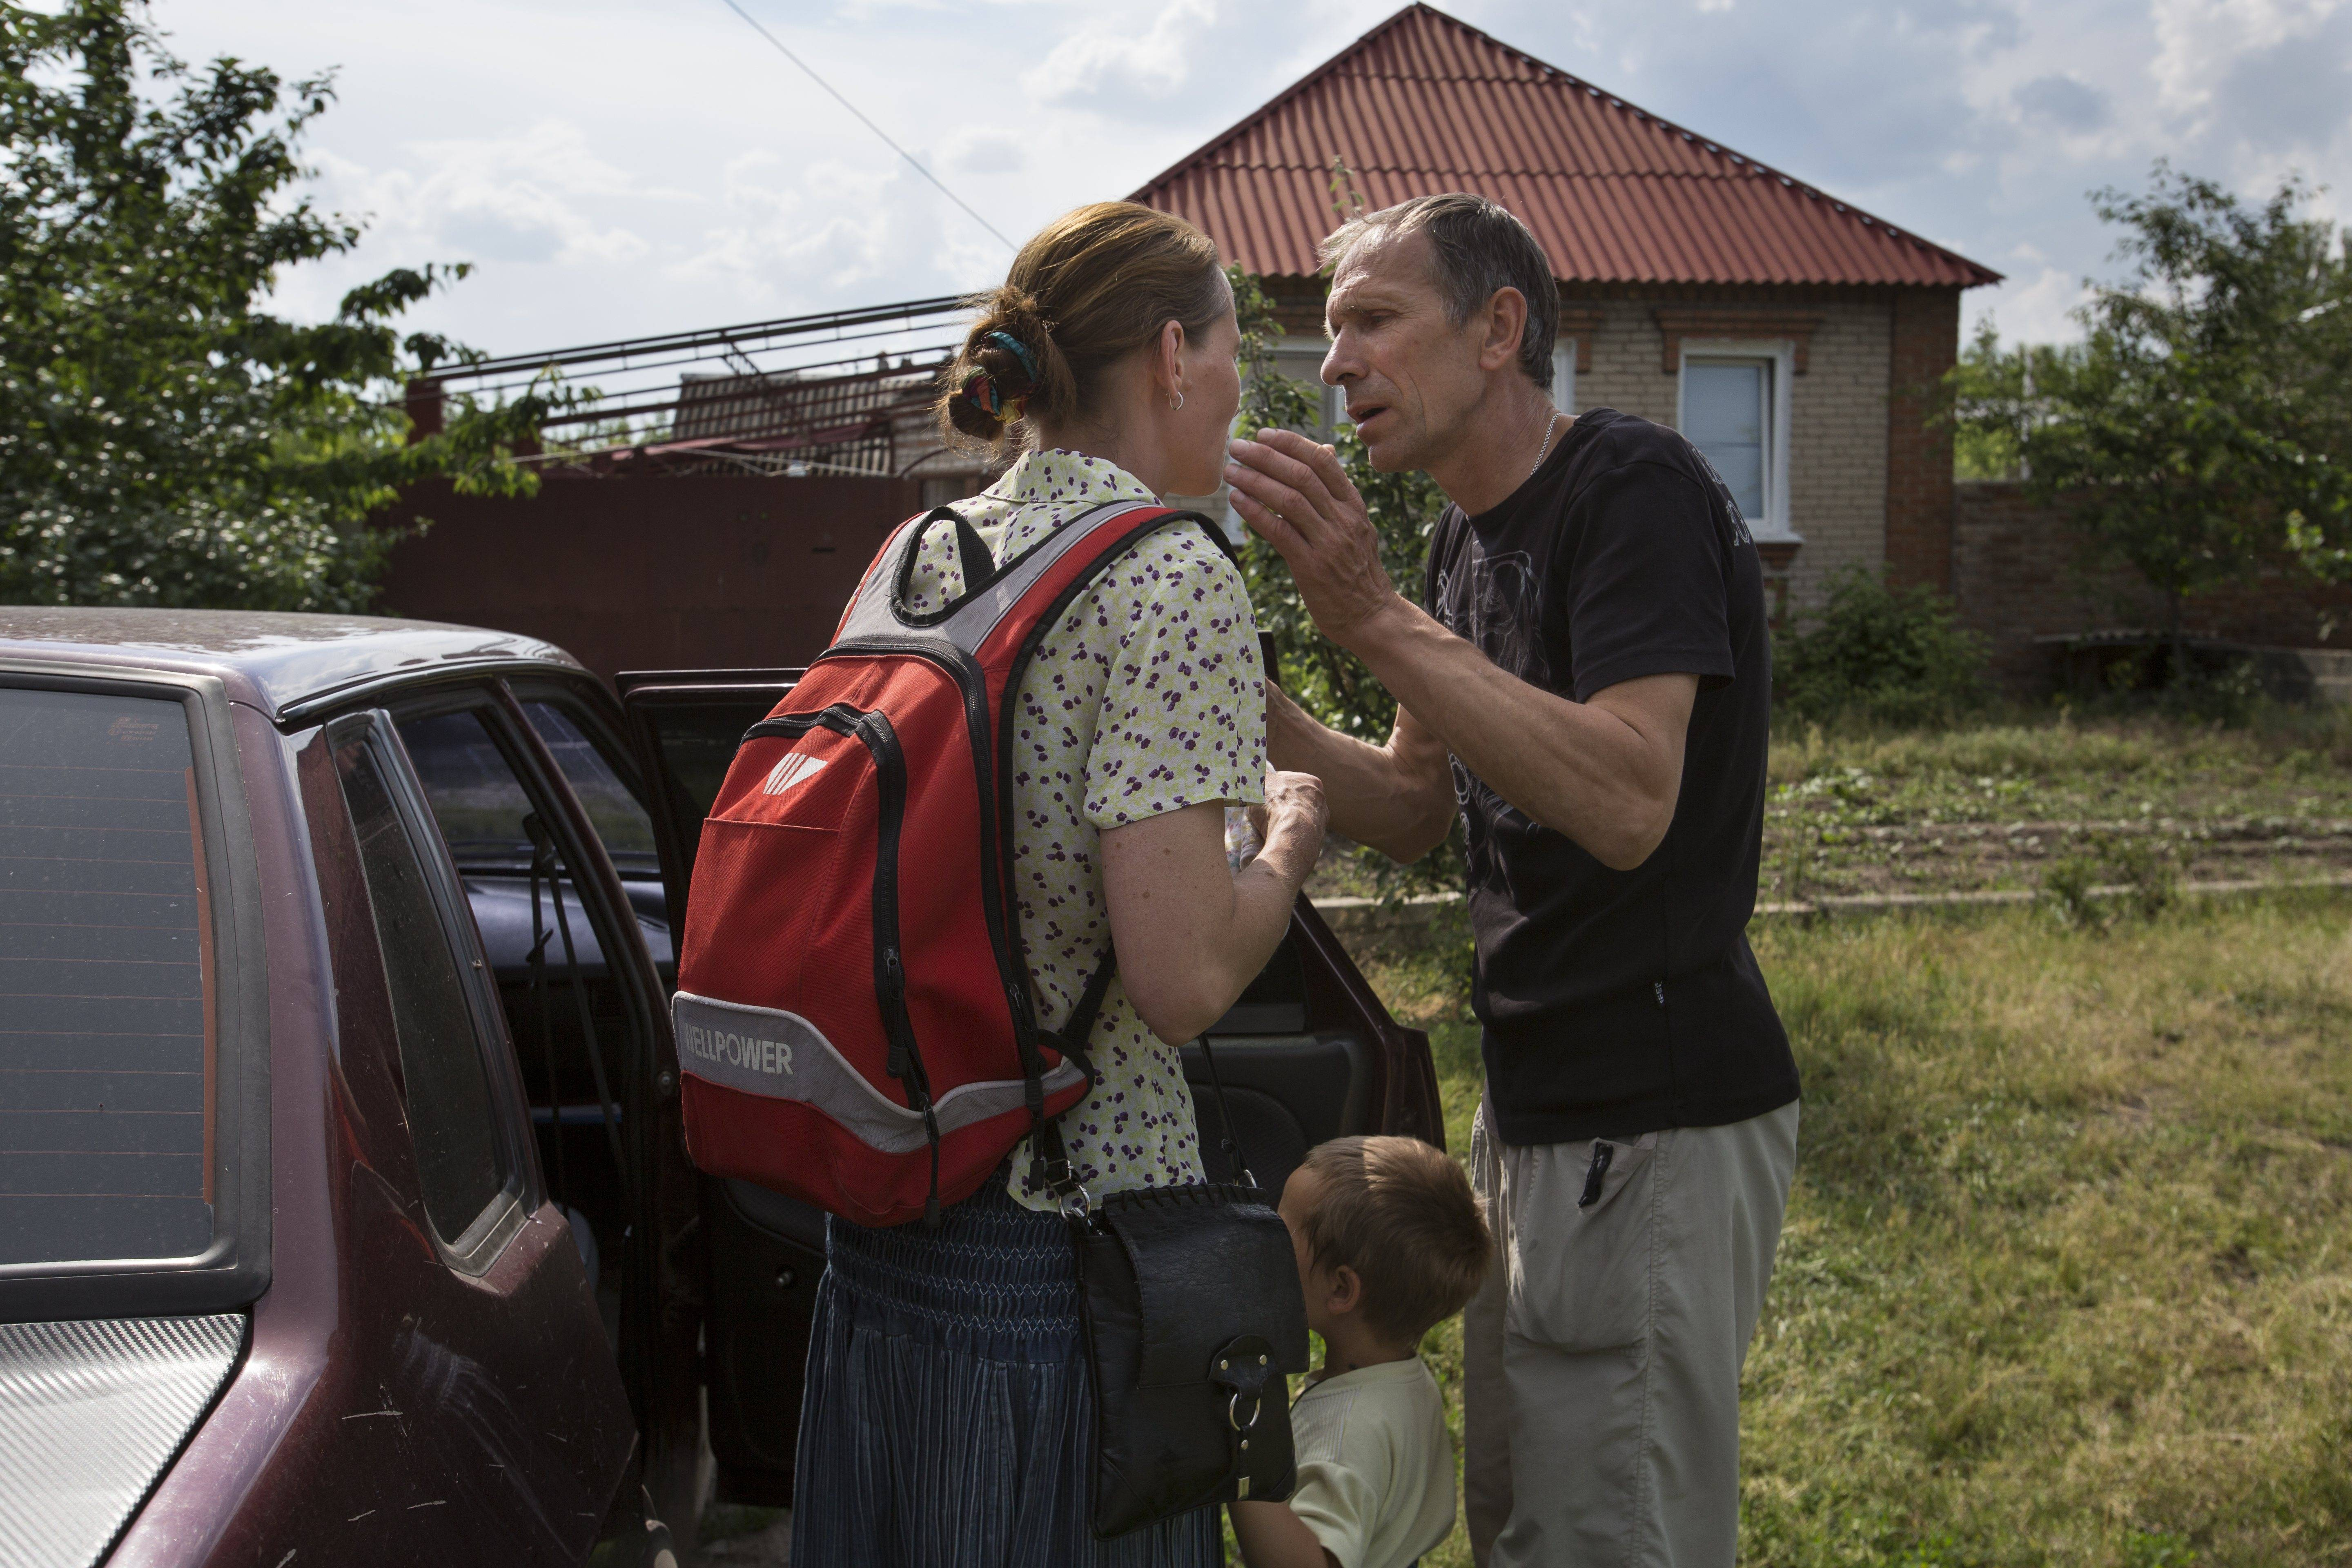 Olga Mikhailova, left, and her husband Vladimir Mikhailov kiss before abandoning their home with their children in Slovyansk, Ukraine, a city 55 miles north of Donetsk that has seen repeated clashes over the past few weeks, with residential areas coming under mortar attack Wednesday from government forces.